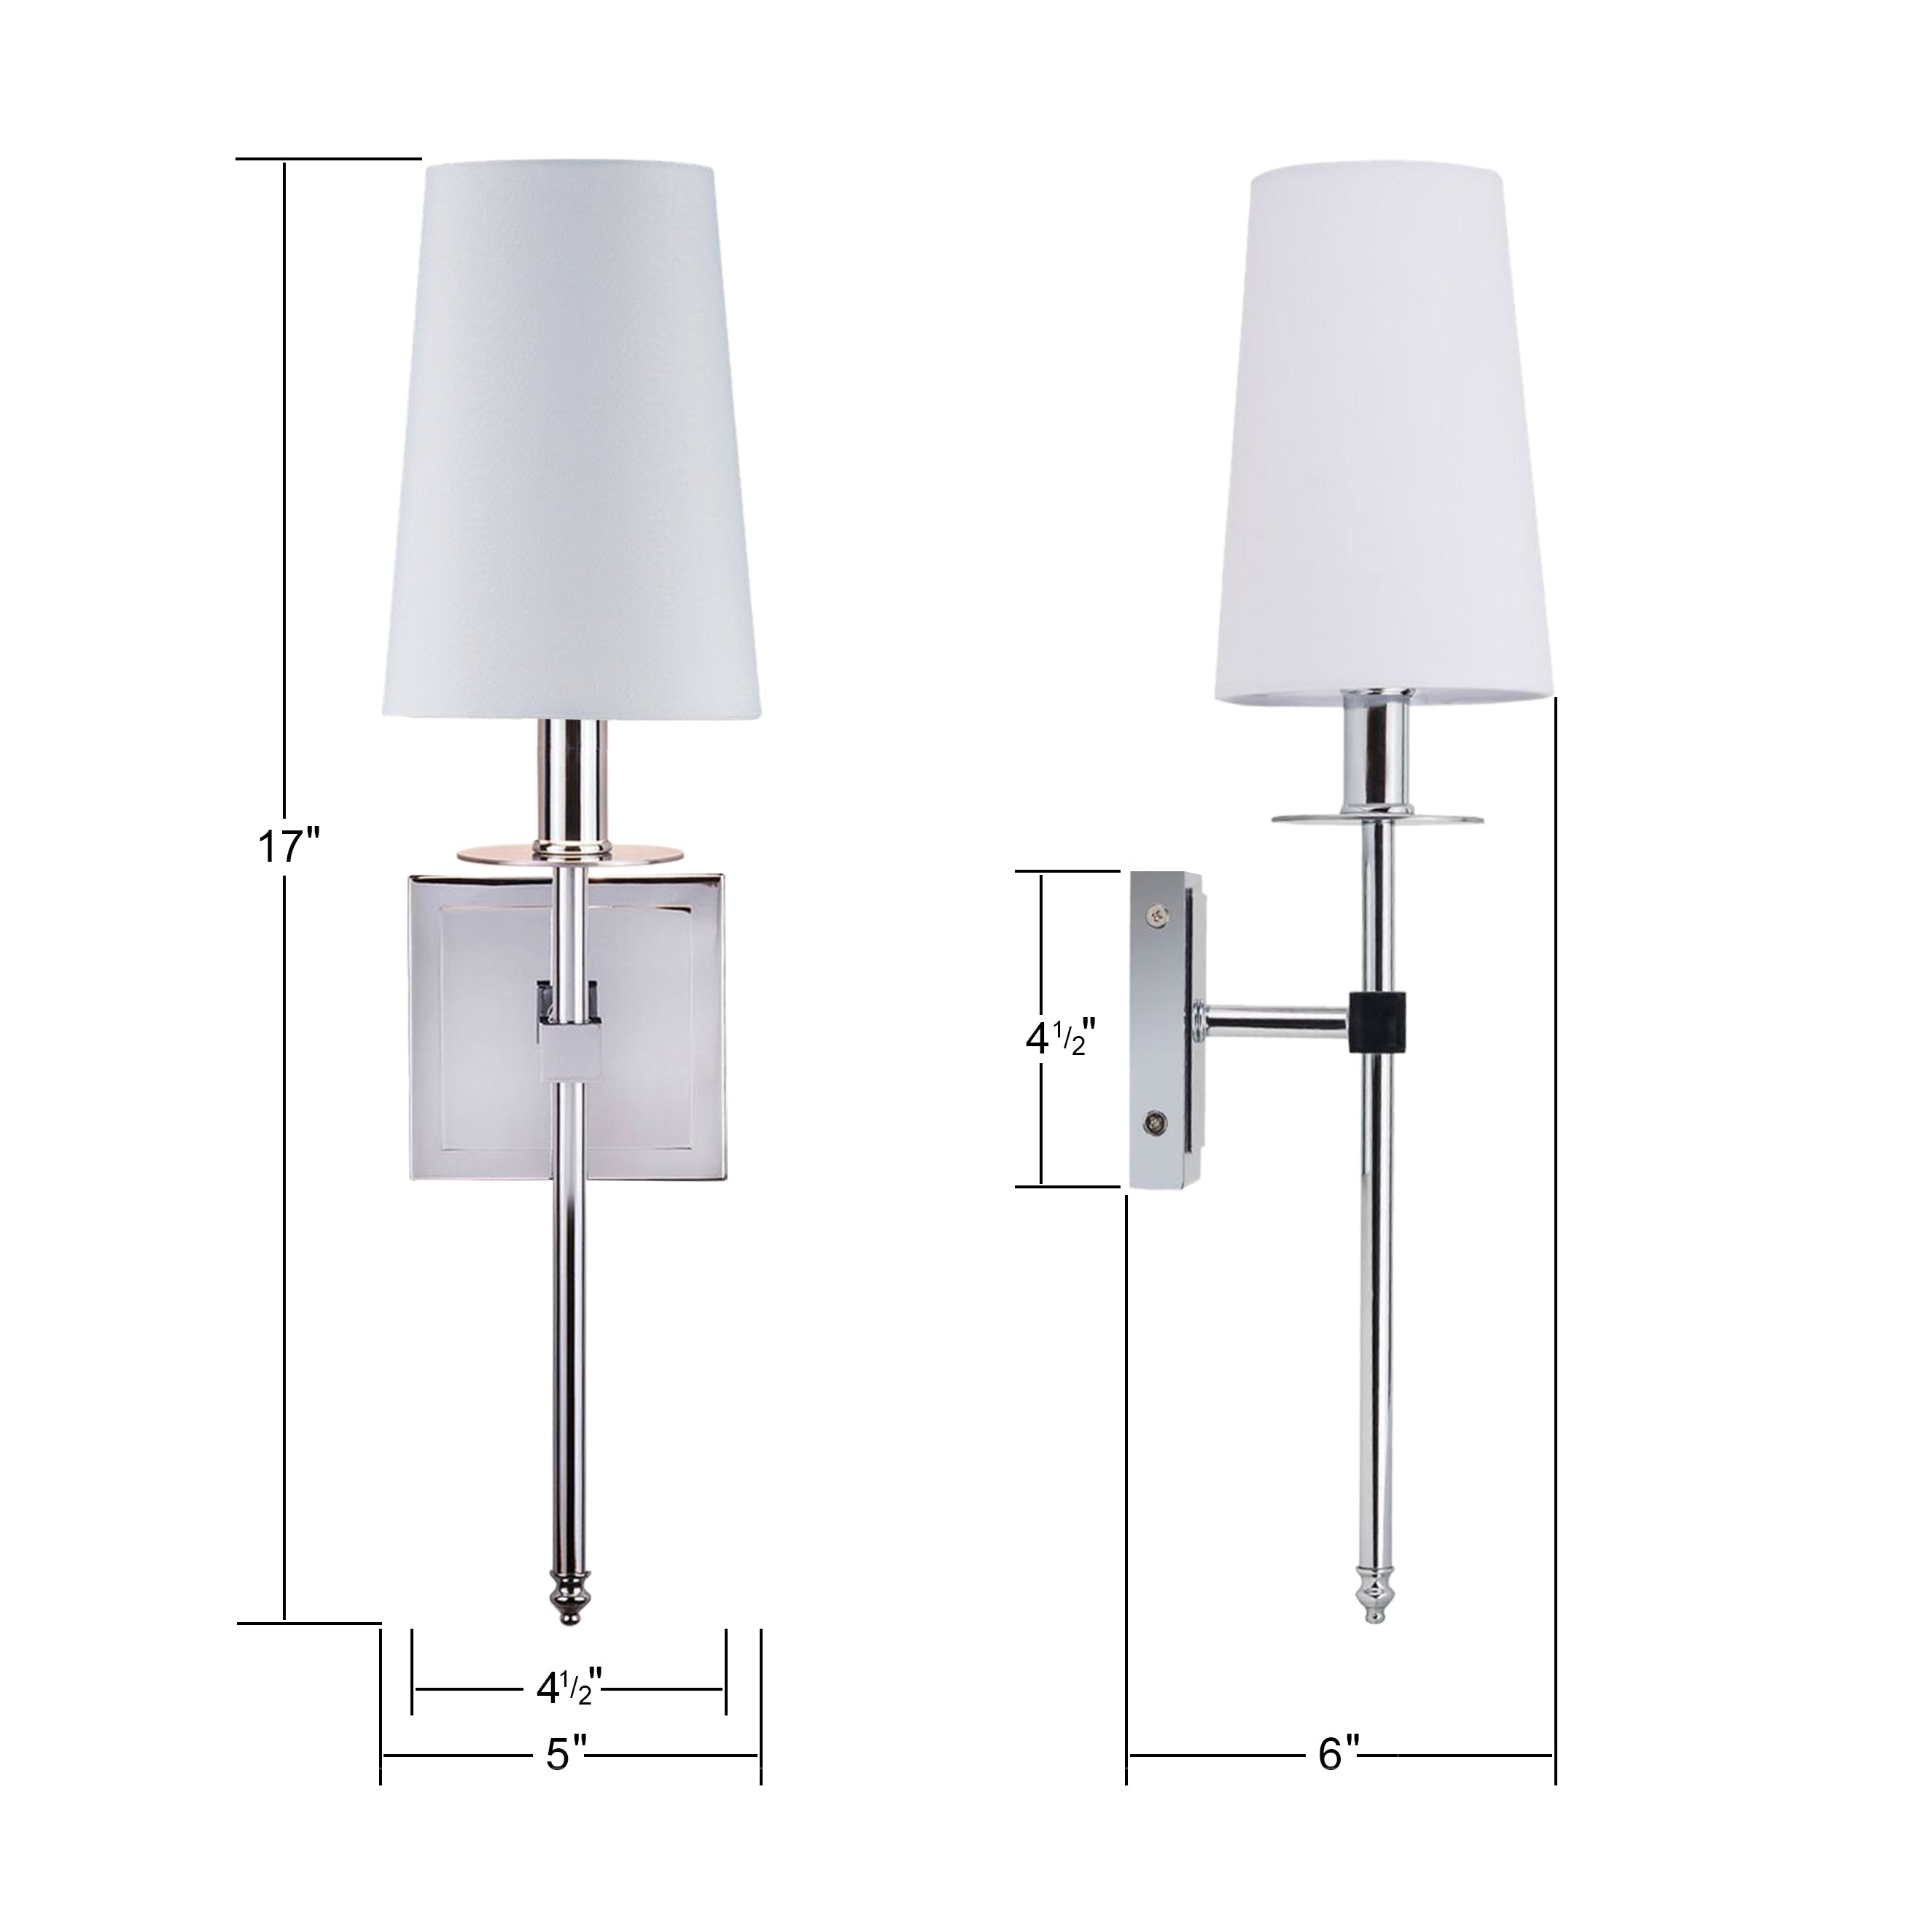 Chrome Torcia Wall Sconce 1-Light Fixture with Fabric Shade Linea di Liara LL-SC425-PC